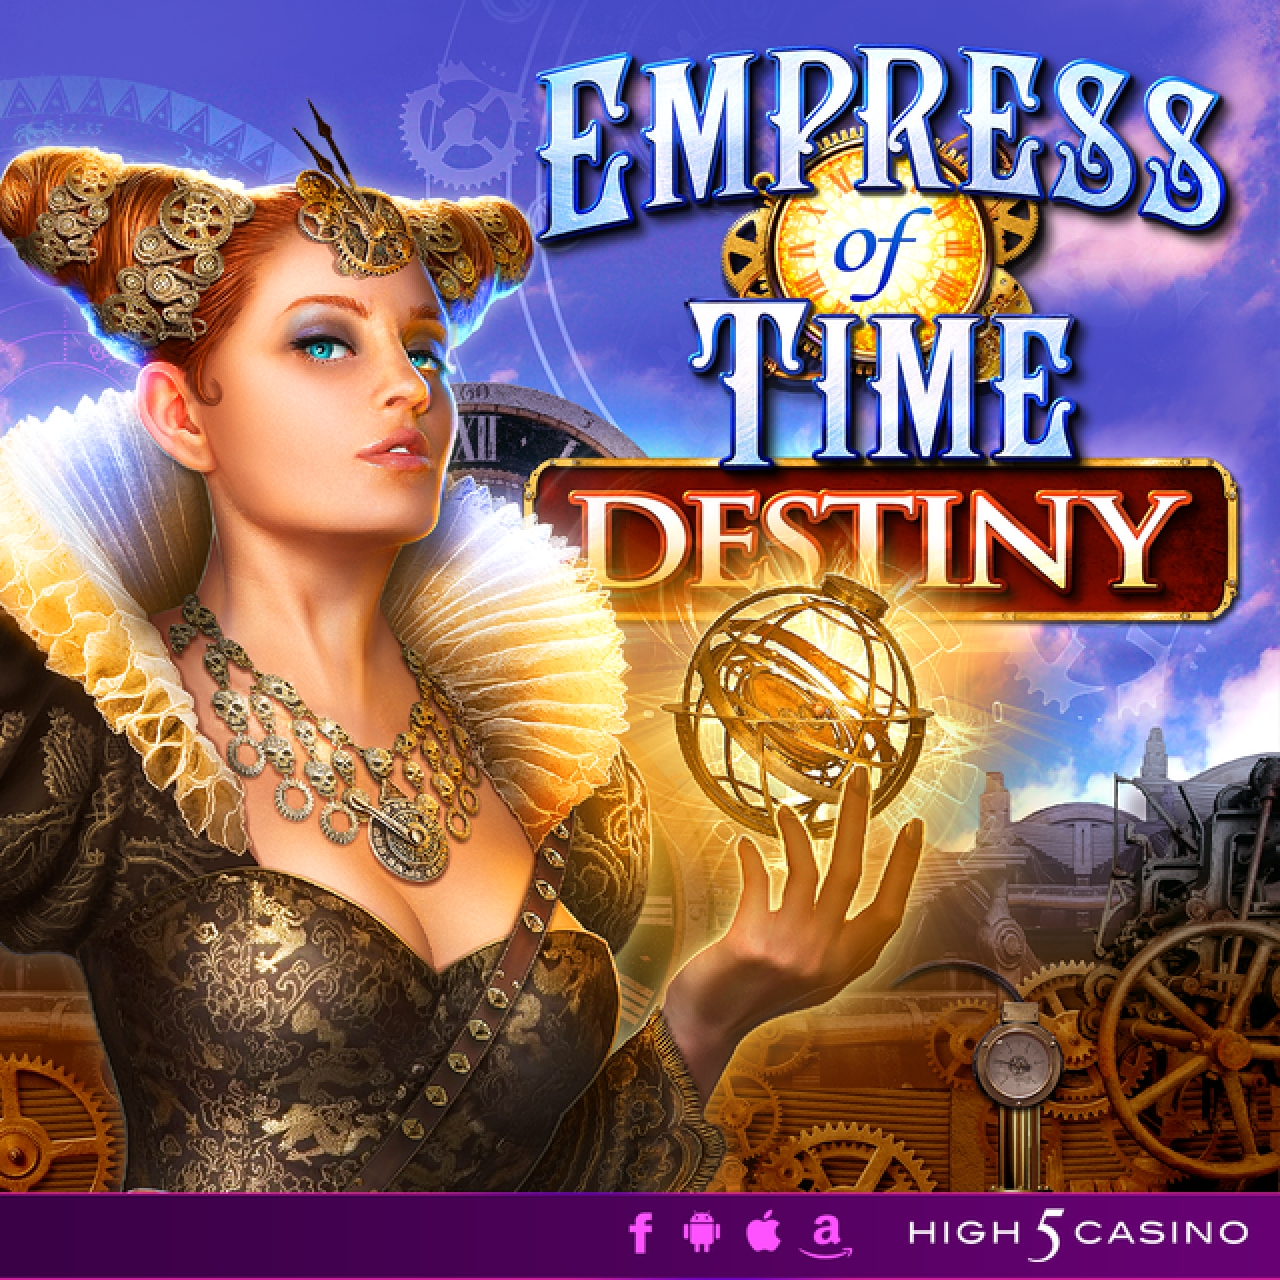 The Empress of Time: Destiny Online Slot Demo Game by High 5 Games